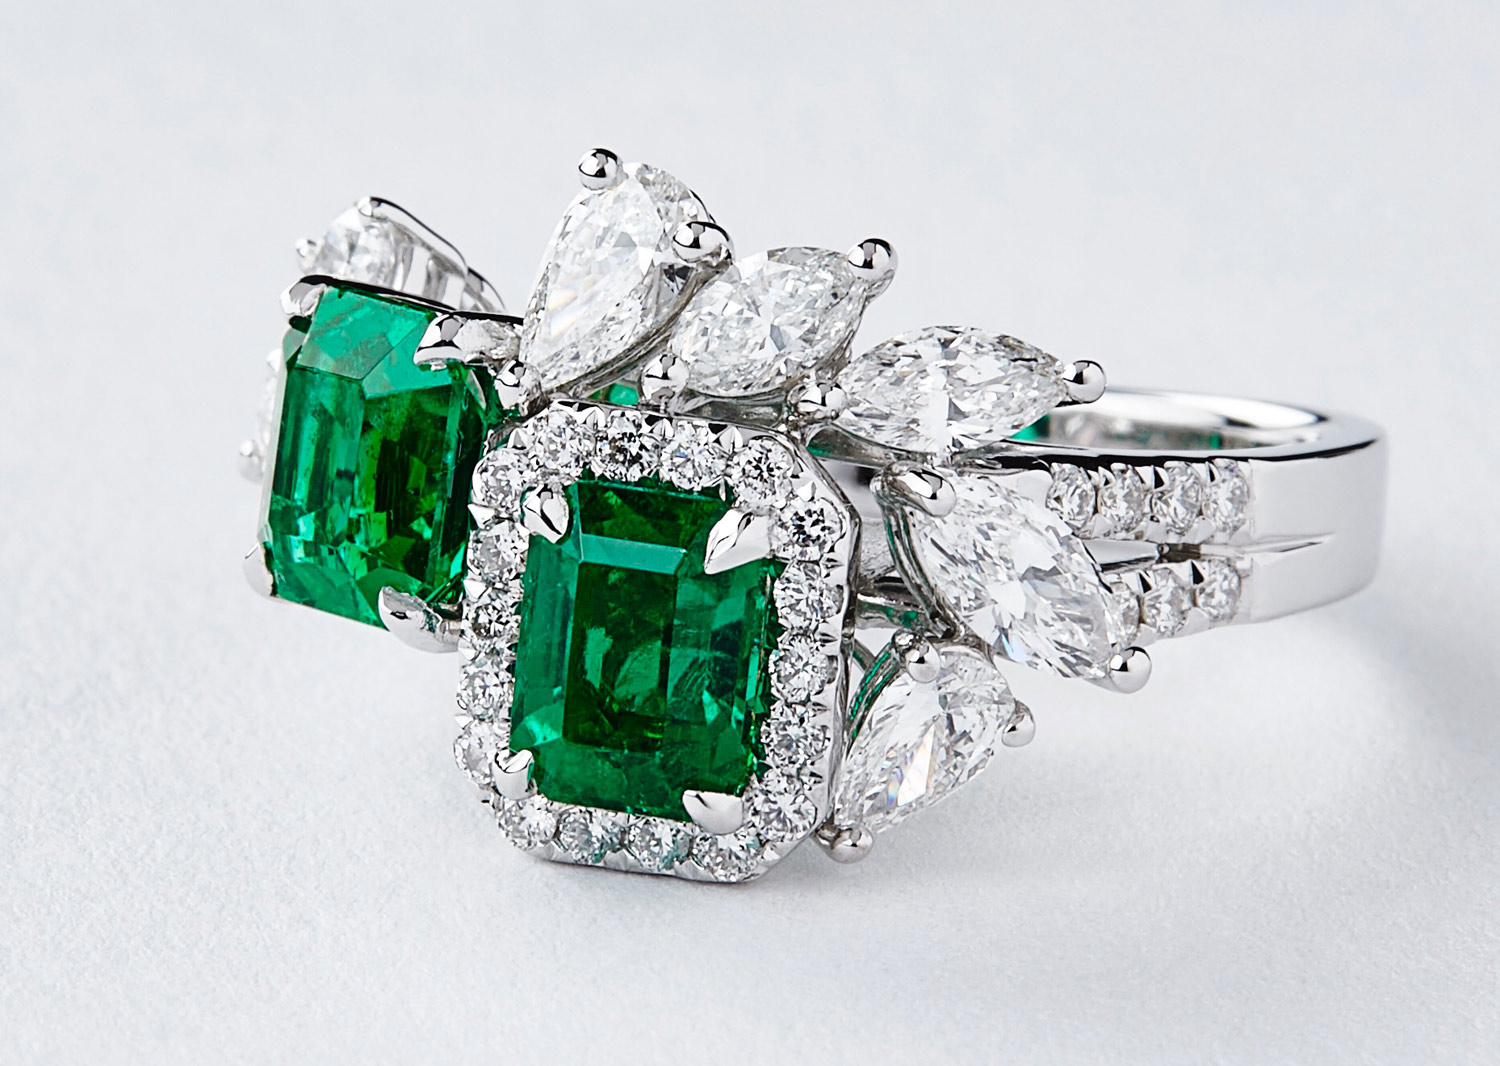 QIU Fine Jewelry QIU Fine Jewelry ring with emeralds and diamonds from Shanghai/Shanghai 2017 collection